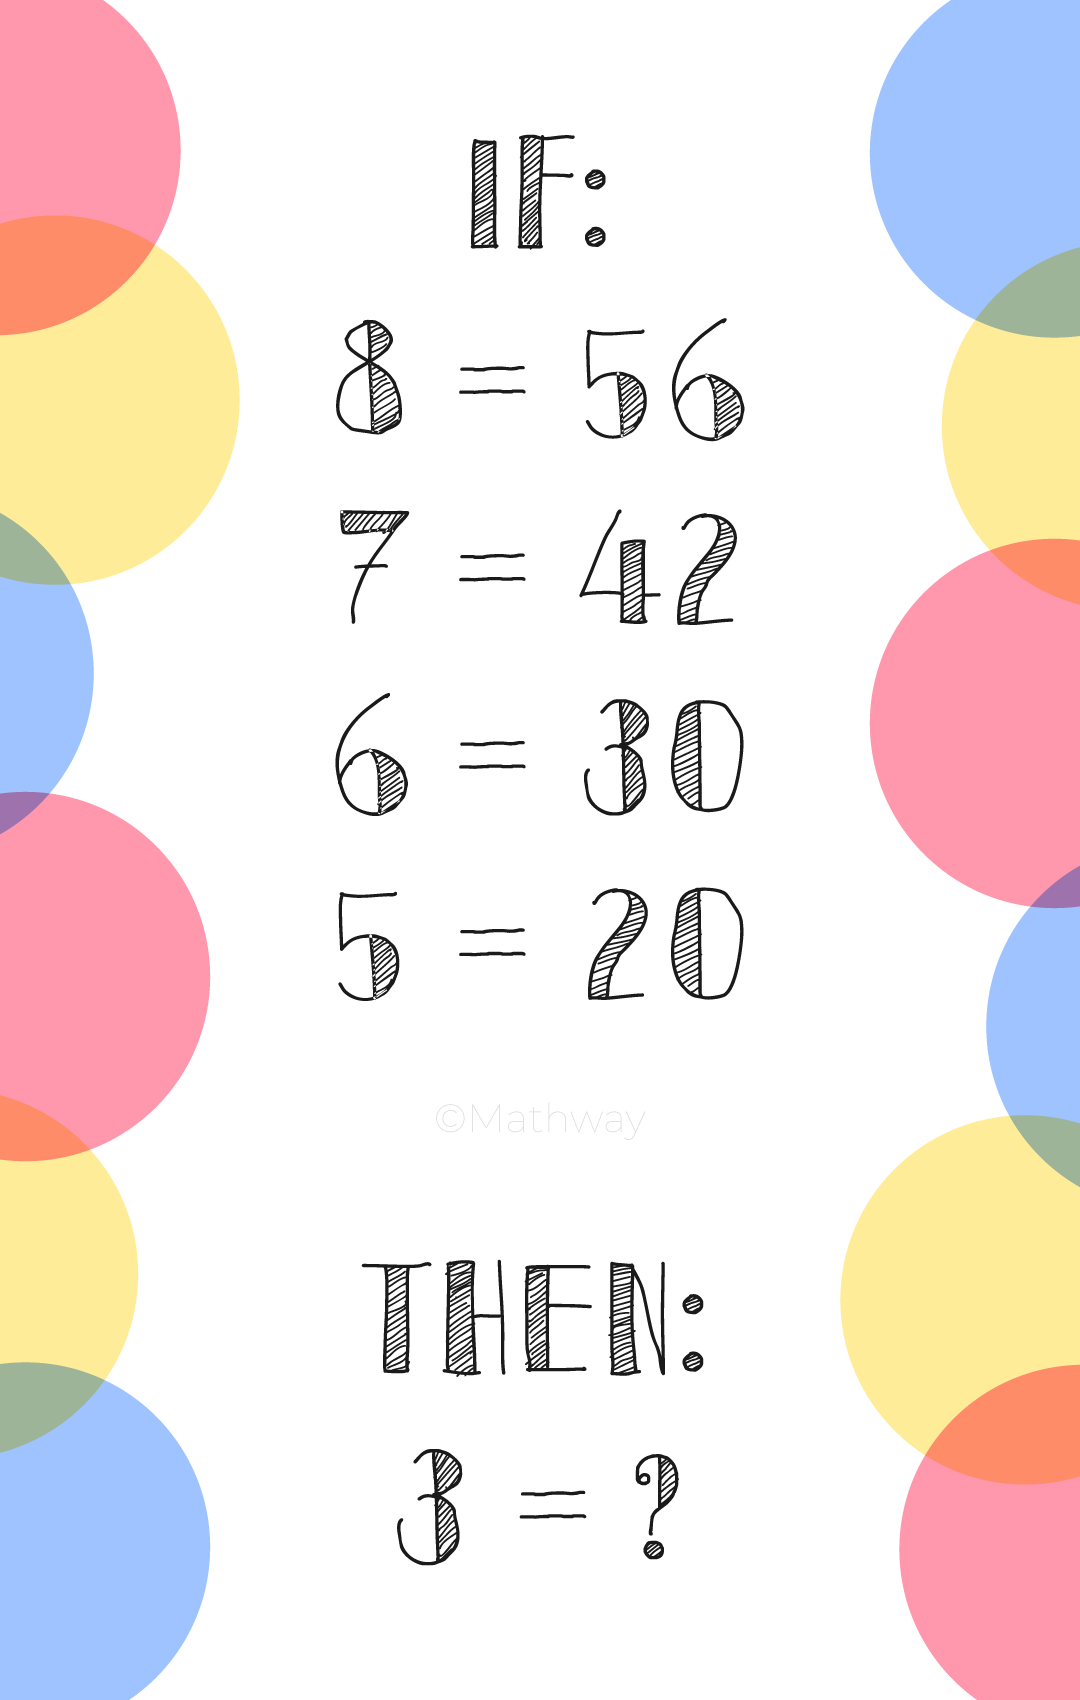 Most People Get This Brainteaser Wrong